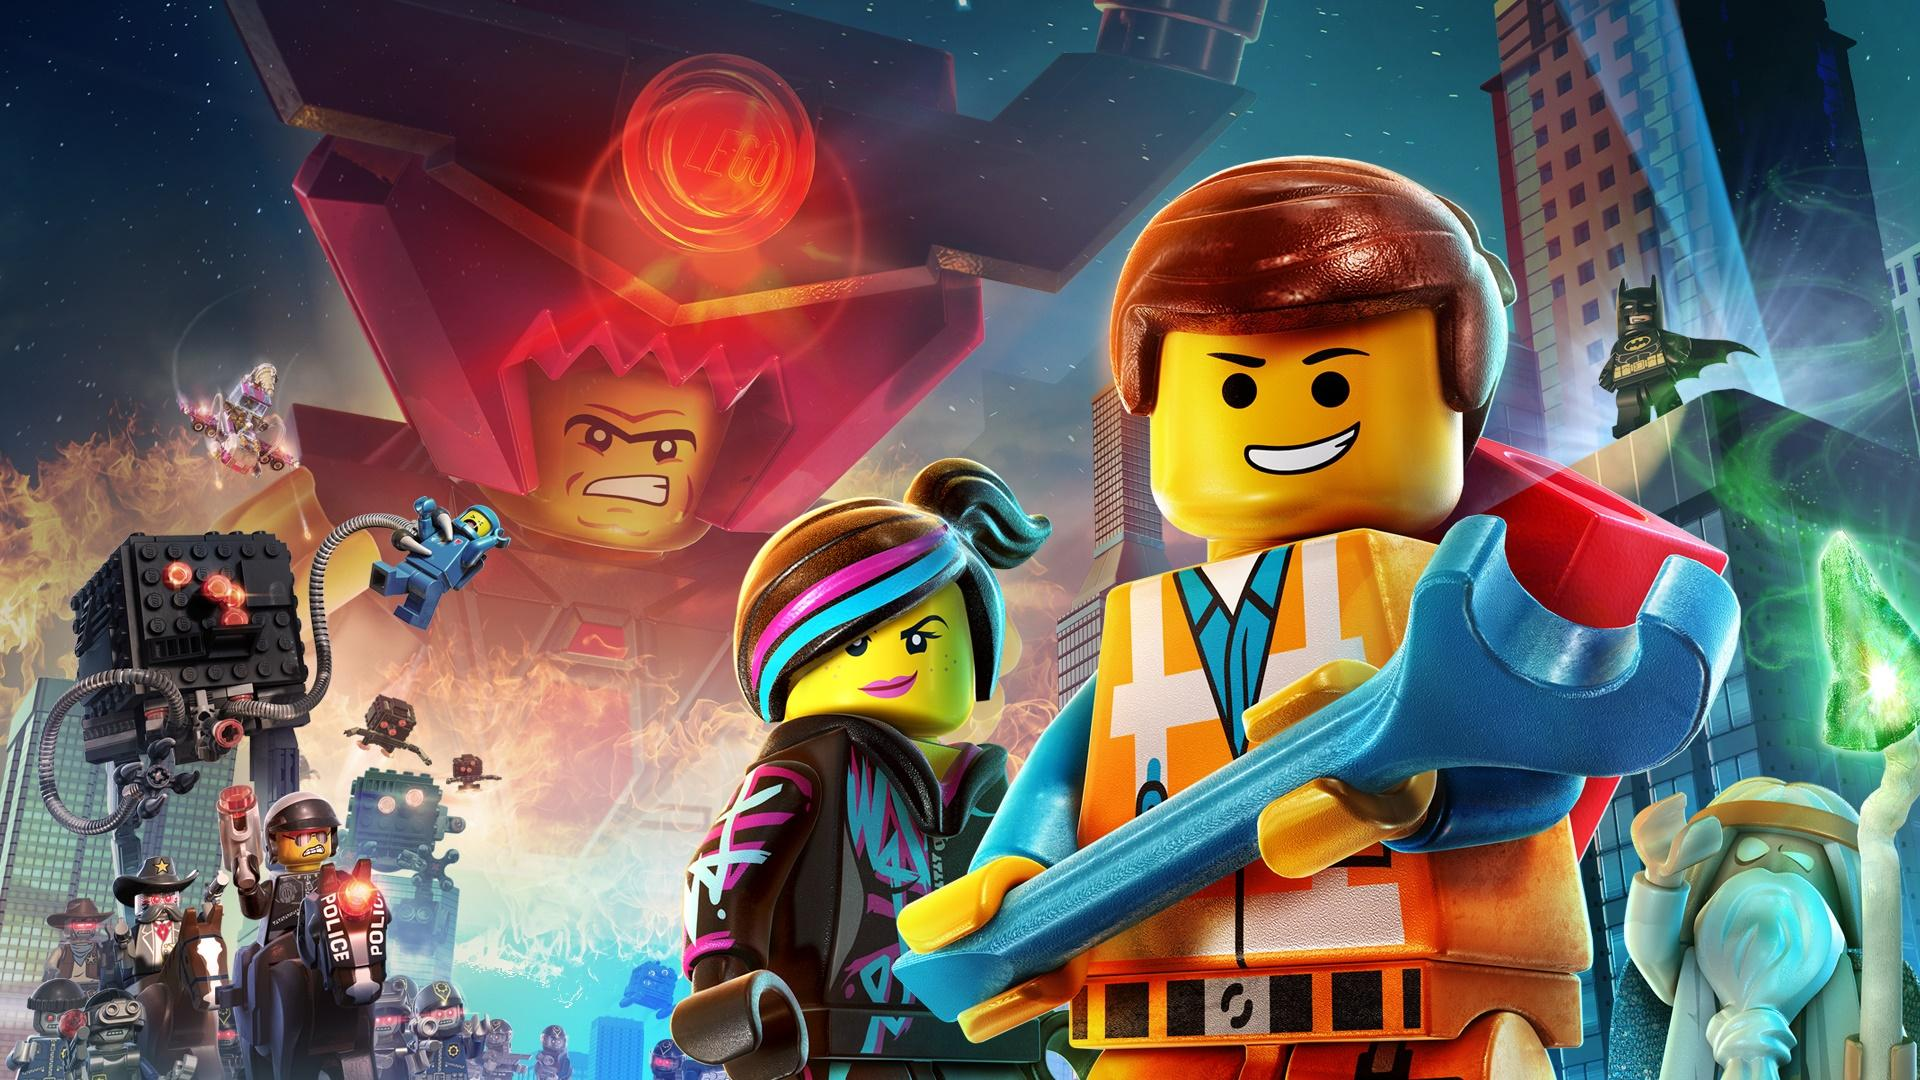 The Lego Movie movie image